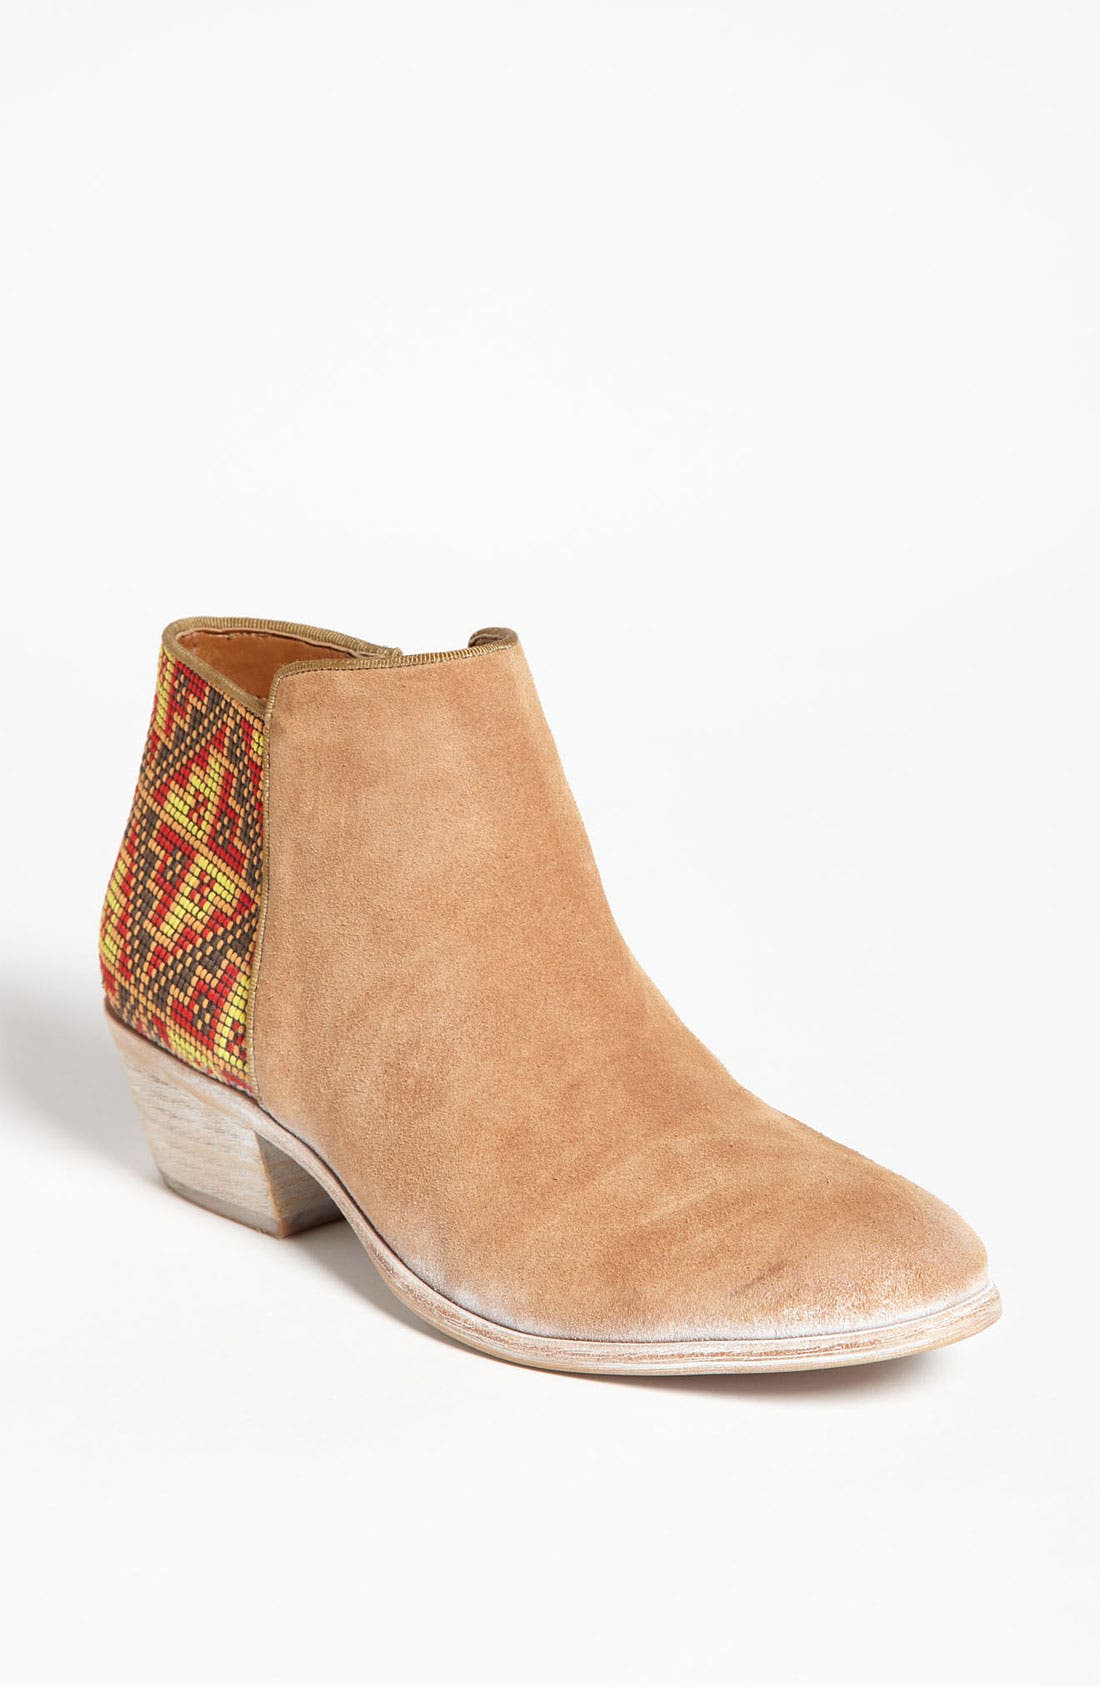 Alternate Image 1 Selected - Sam Edelman 'Putnam' Bootie